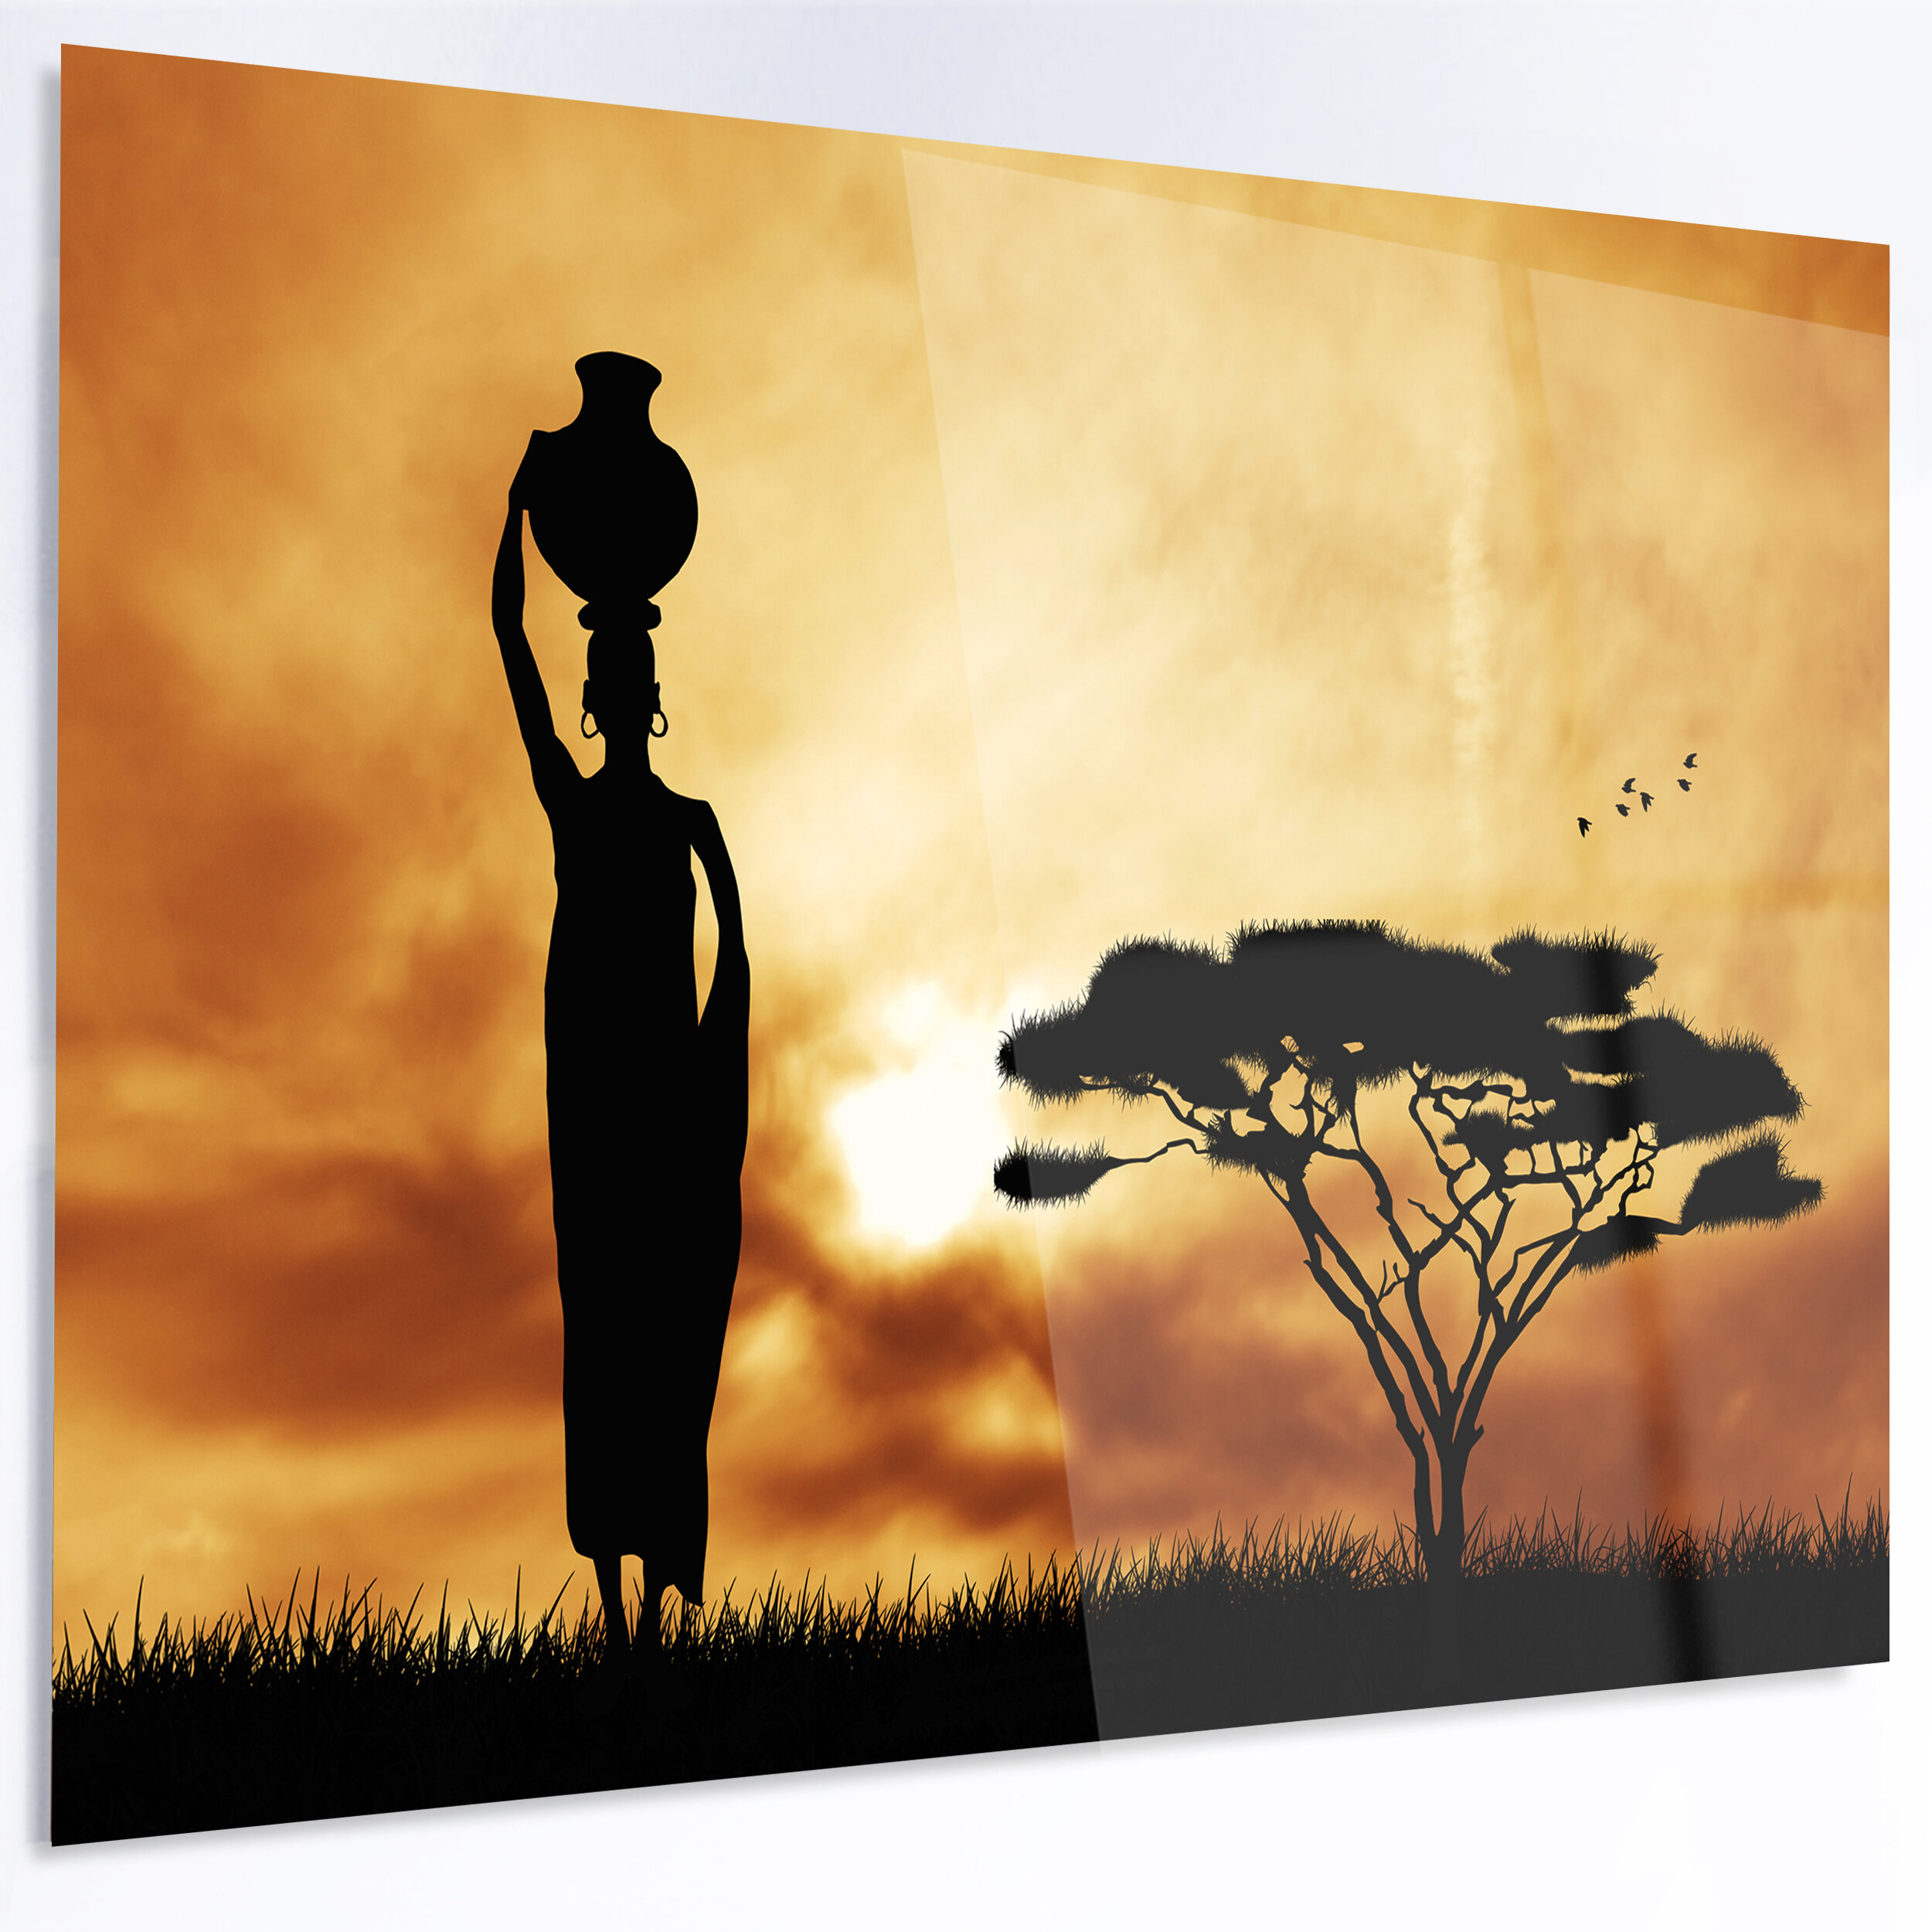 DesignArt \'African Woman and Lonely Tree\' Graphic Art on Metal | Wayfair